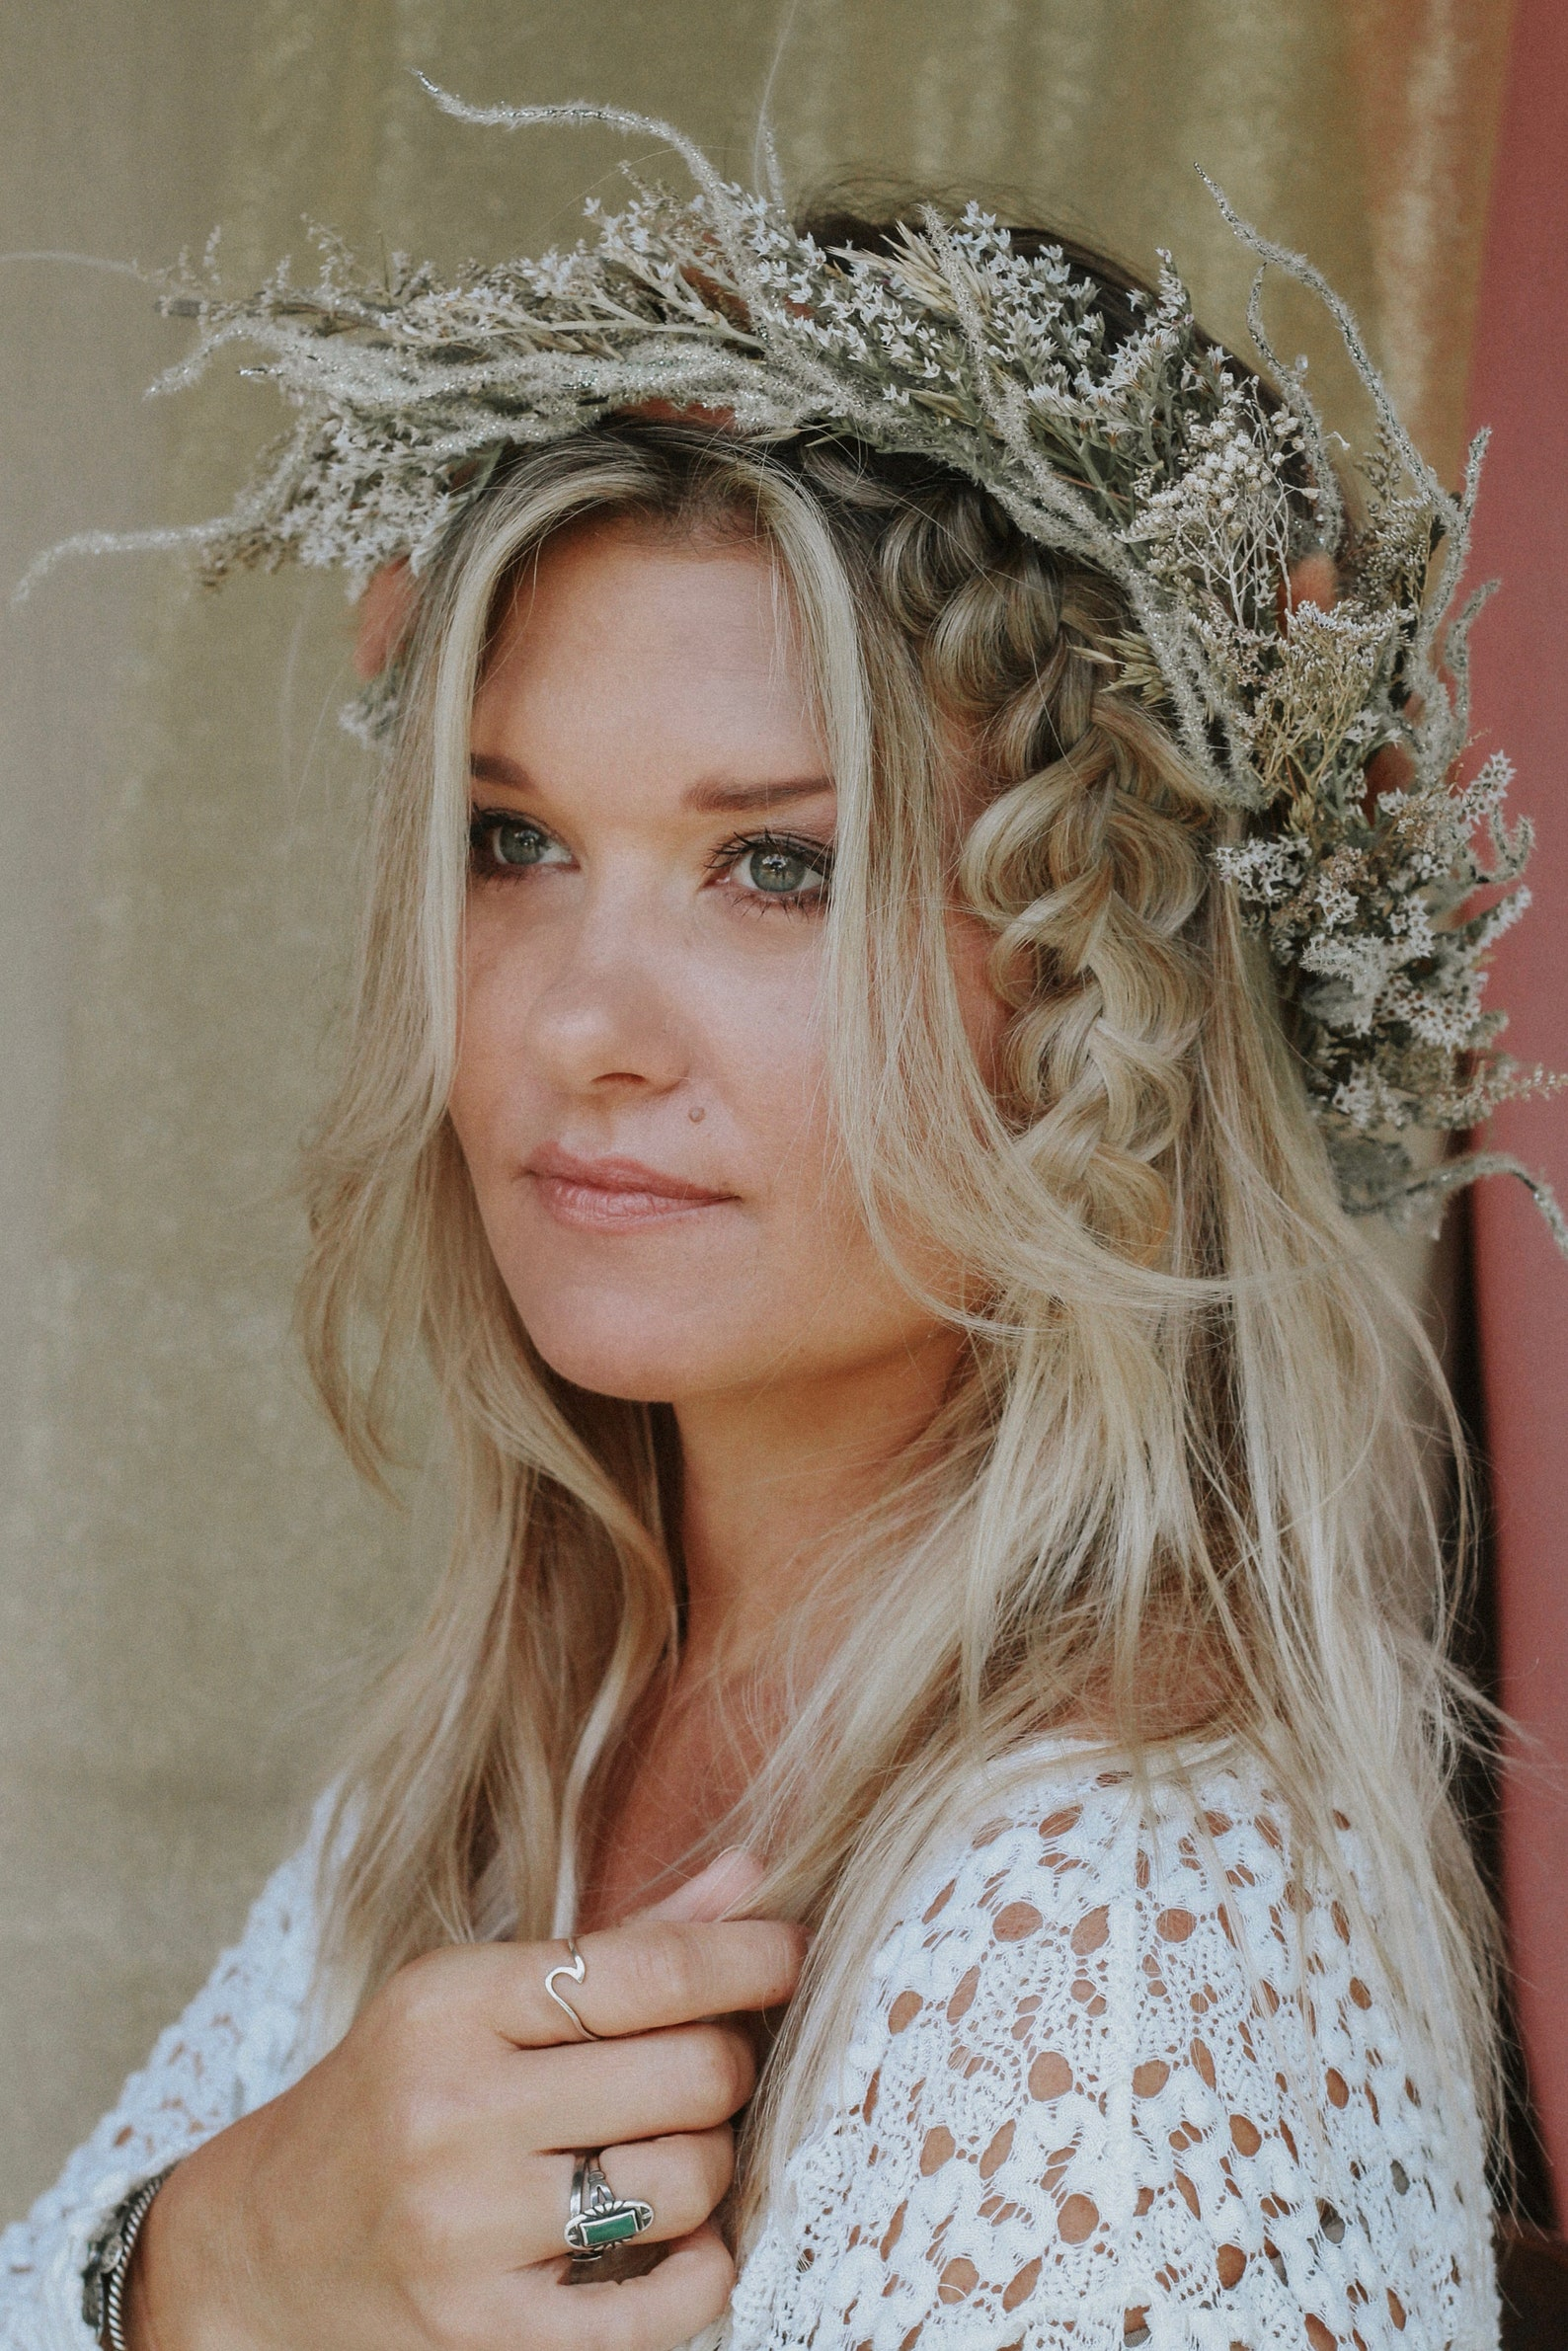 Wedding Hair Accessories Ideas for Boho Chic Brides, Forest Fairytale Hair Vrown Silver Sprigs and Bunny Tales